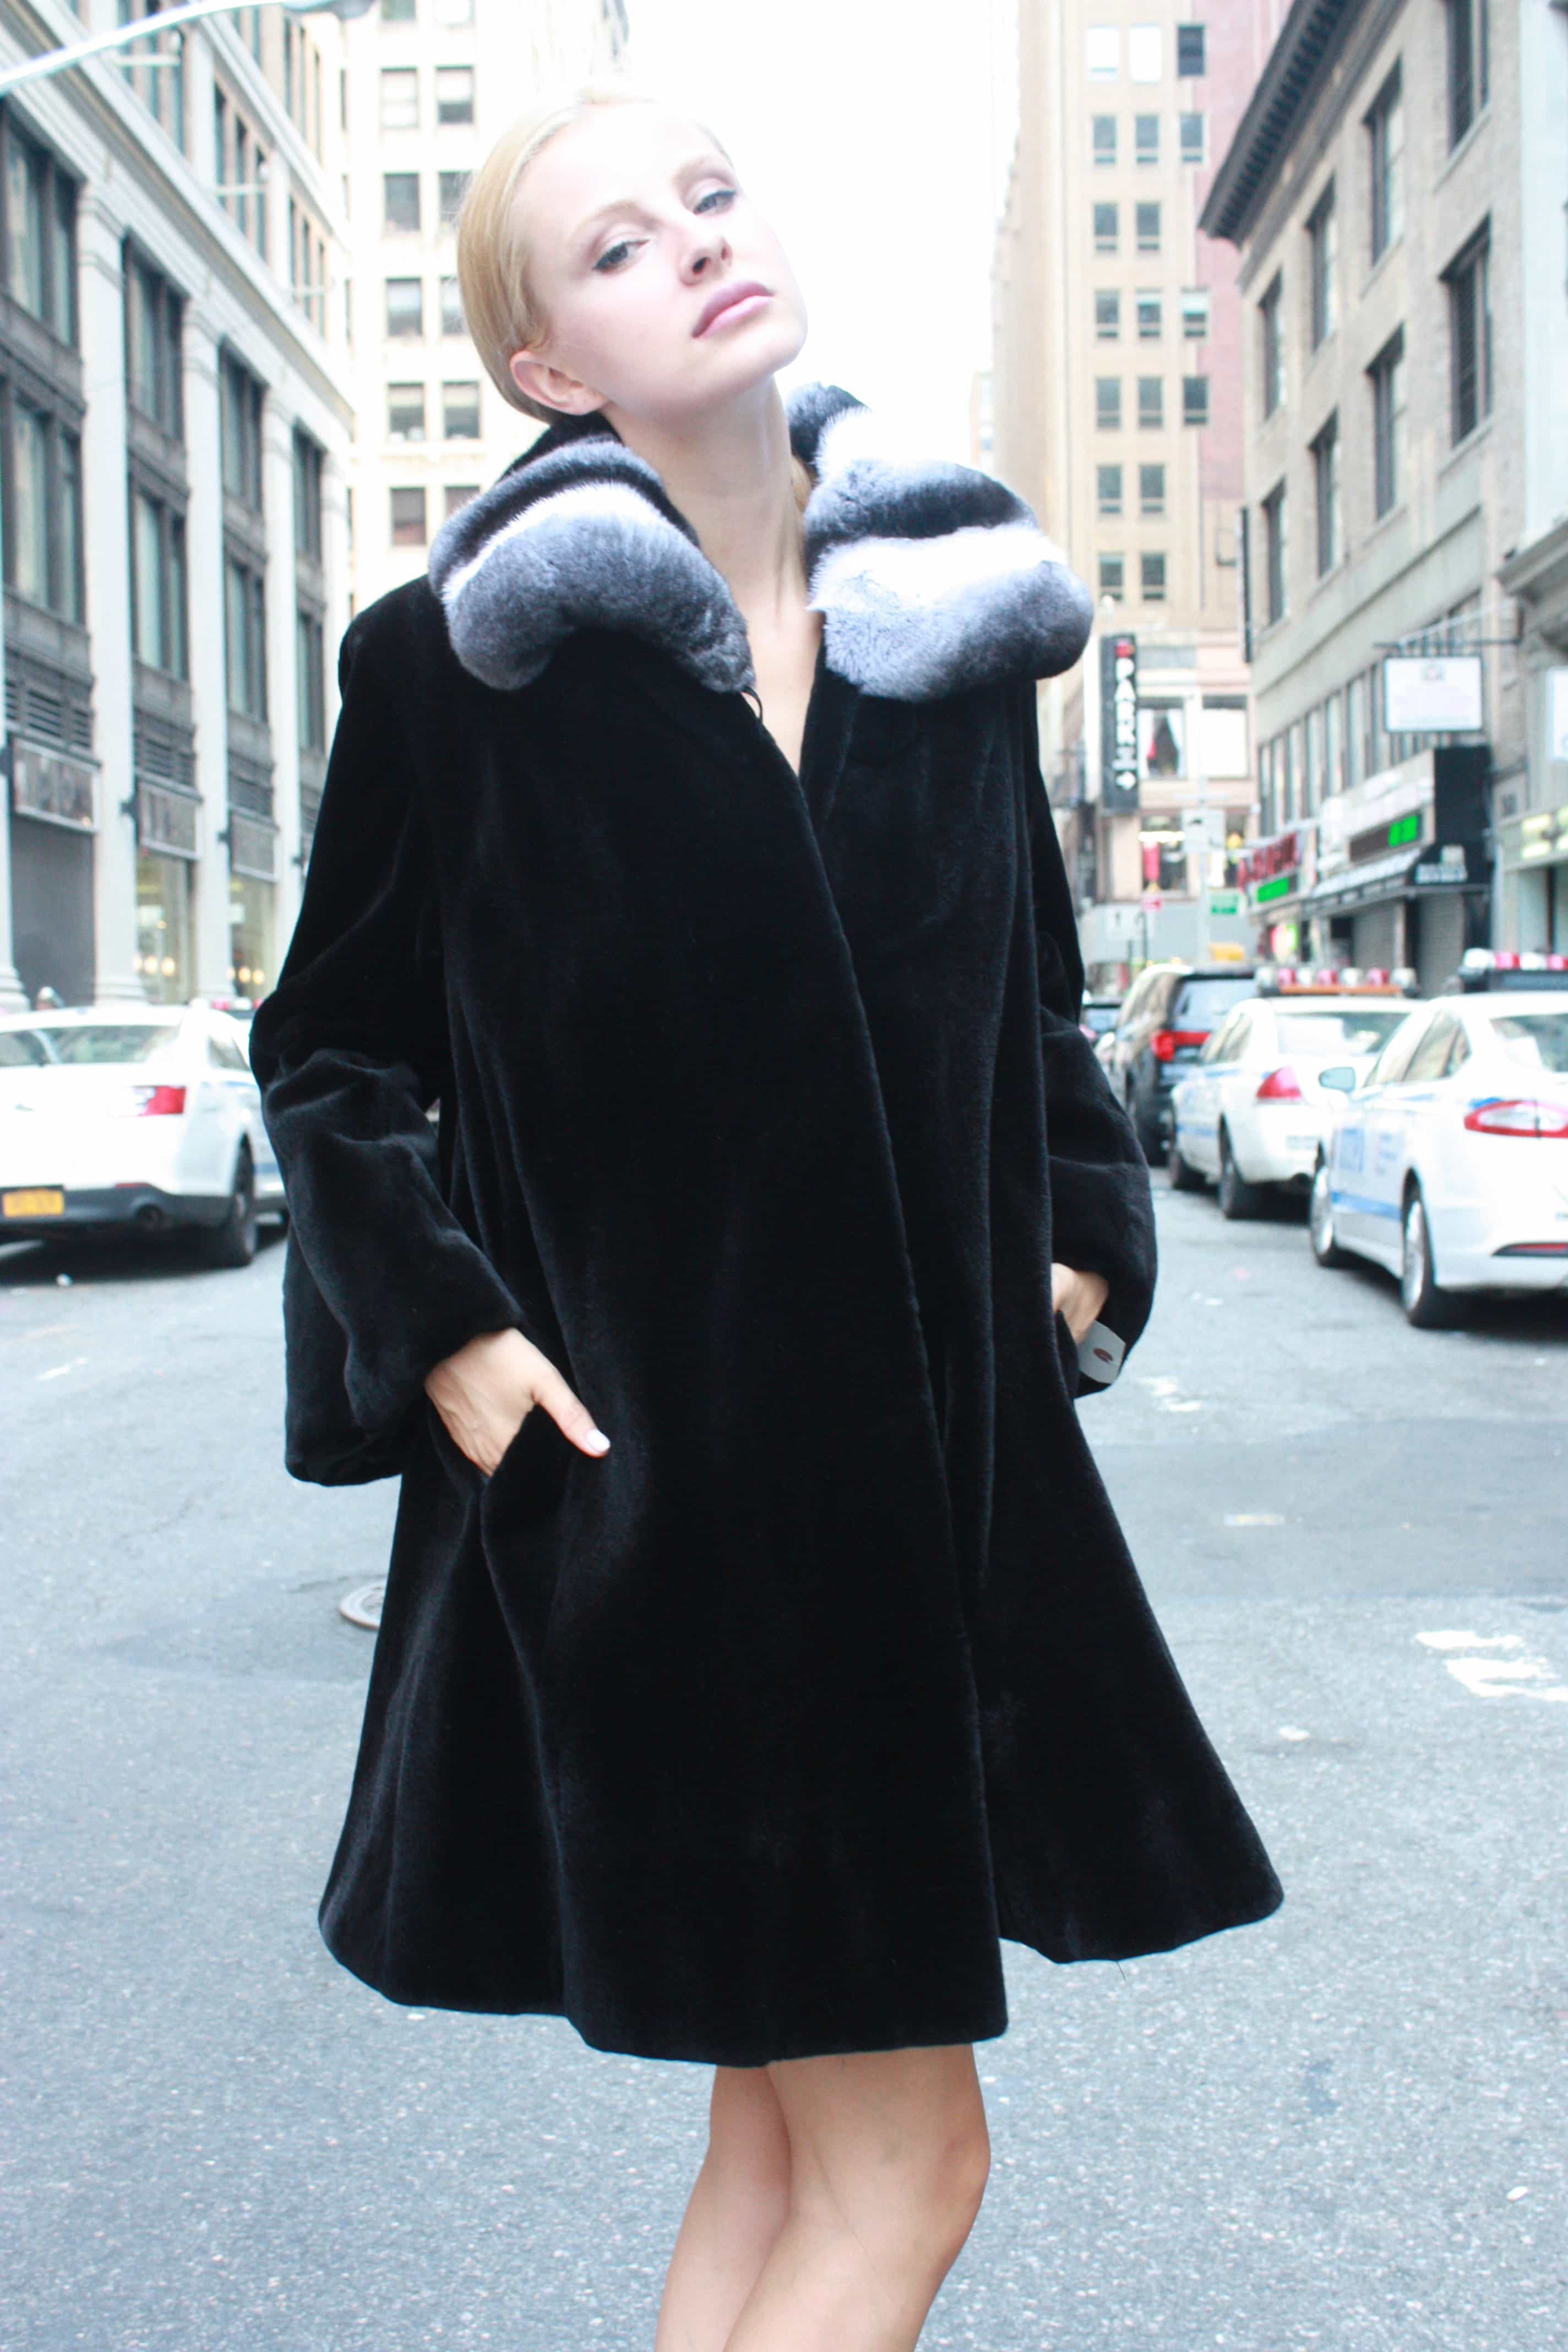 Marc Kaufman Furs presents a black sheared mink fur stroller with chinchilla wing collar from Marc Kaufman Furs New York City,Fur coats in Argentina, fur coats in Chile, fur coats in Venezuela, fur coats in Australia, fur coats in Belgium,fur coats in Netherlands, fur coats in Norway,fur coats in Sweden,fur coats in Dubais,fur coats in Egypt,fur coats in Egypt,fur coats in Kuwait, fur coats in South Africa,fur coats in Tunisia,fur coats in the Falklands